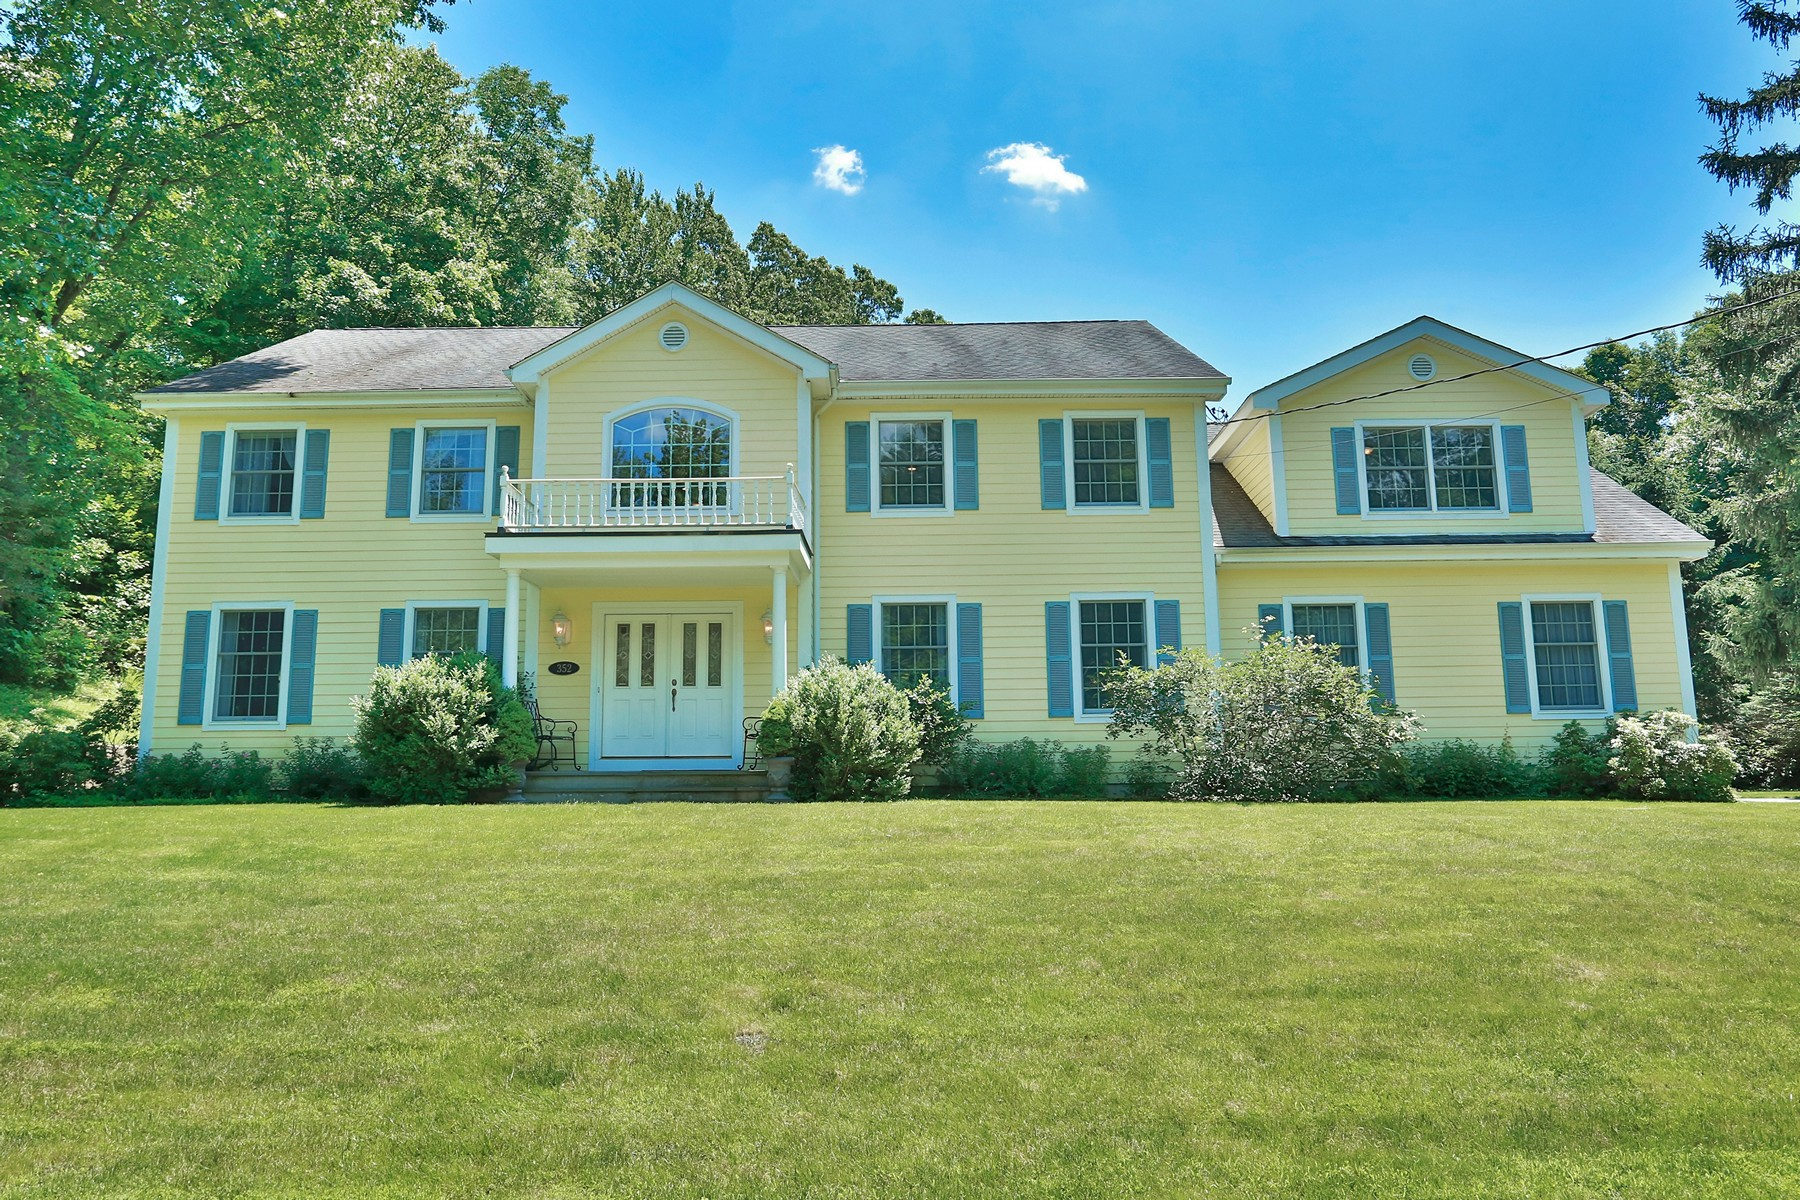 Single Family Homes for Active at Perfect Country Home 352 CROTON DAM ROAD Ossining, New York 1056 United States